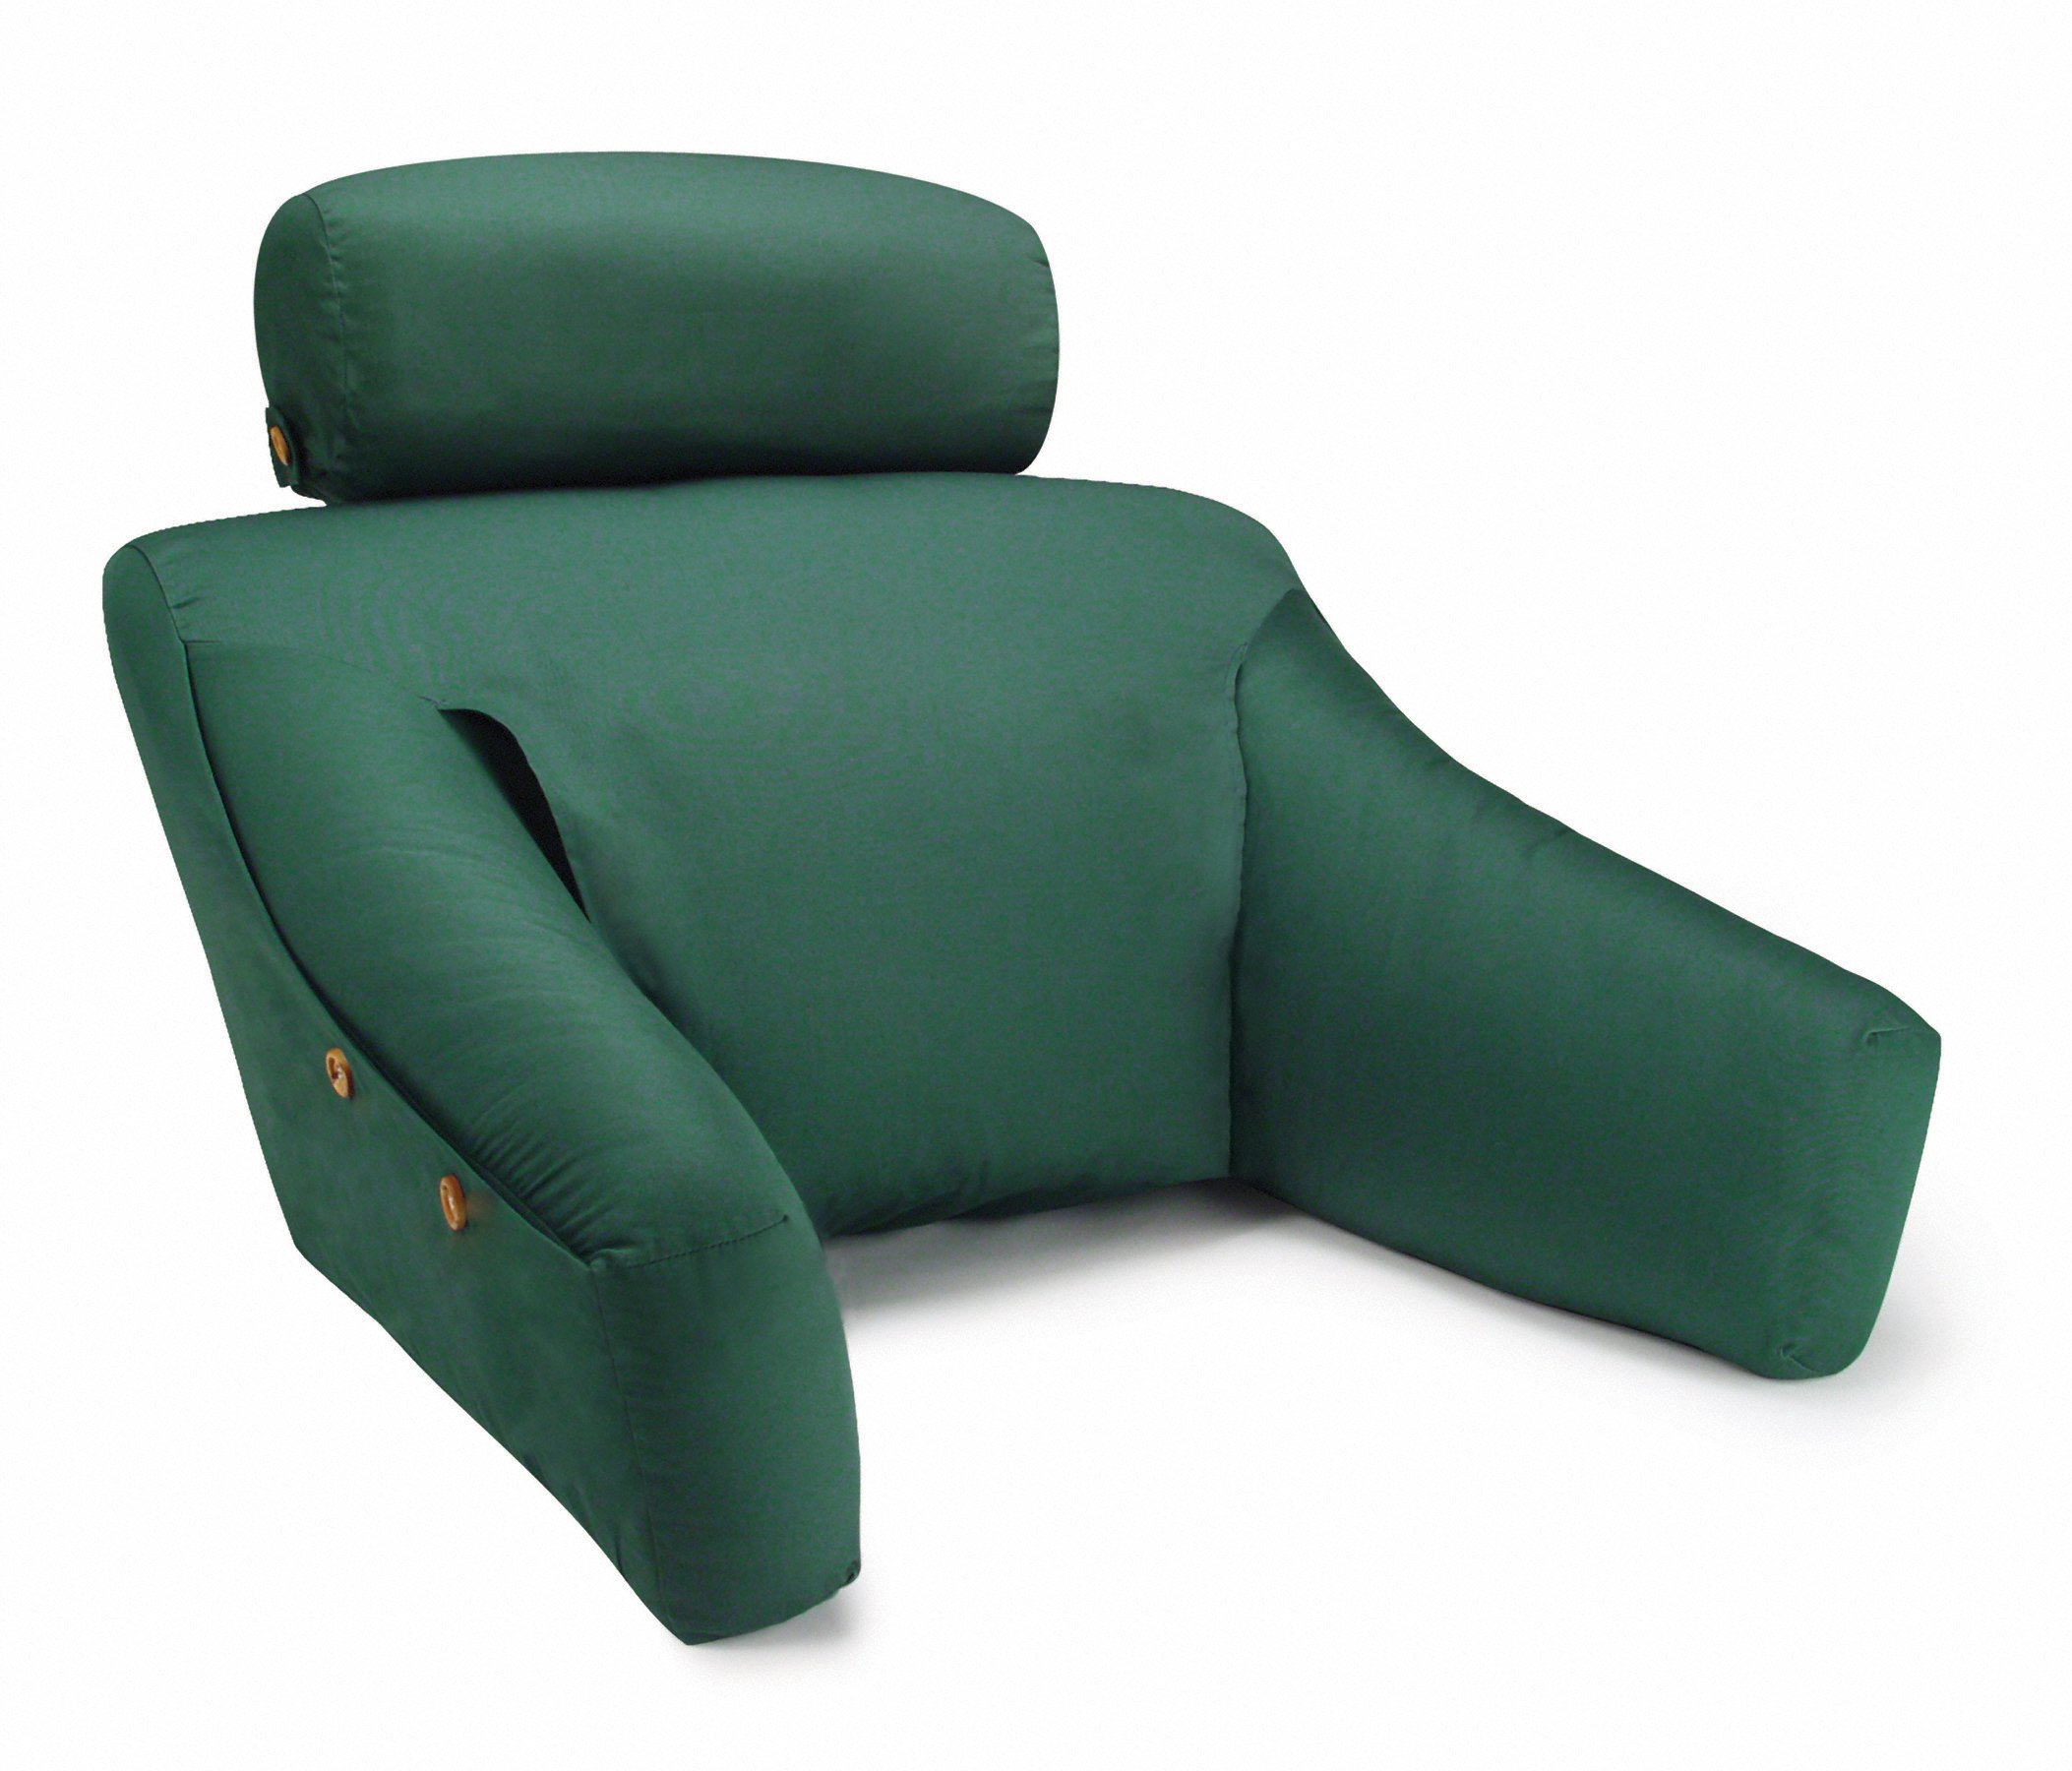 BedLounge Dr. Designed (Small Size, 100% Cotton Cover, Green Color): The Ultimate Reading Pillow, Back Support Pillow, Pregnancy Pillow, TV Pillow and More